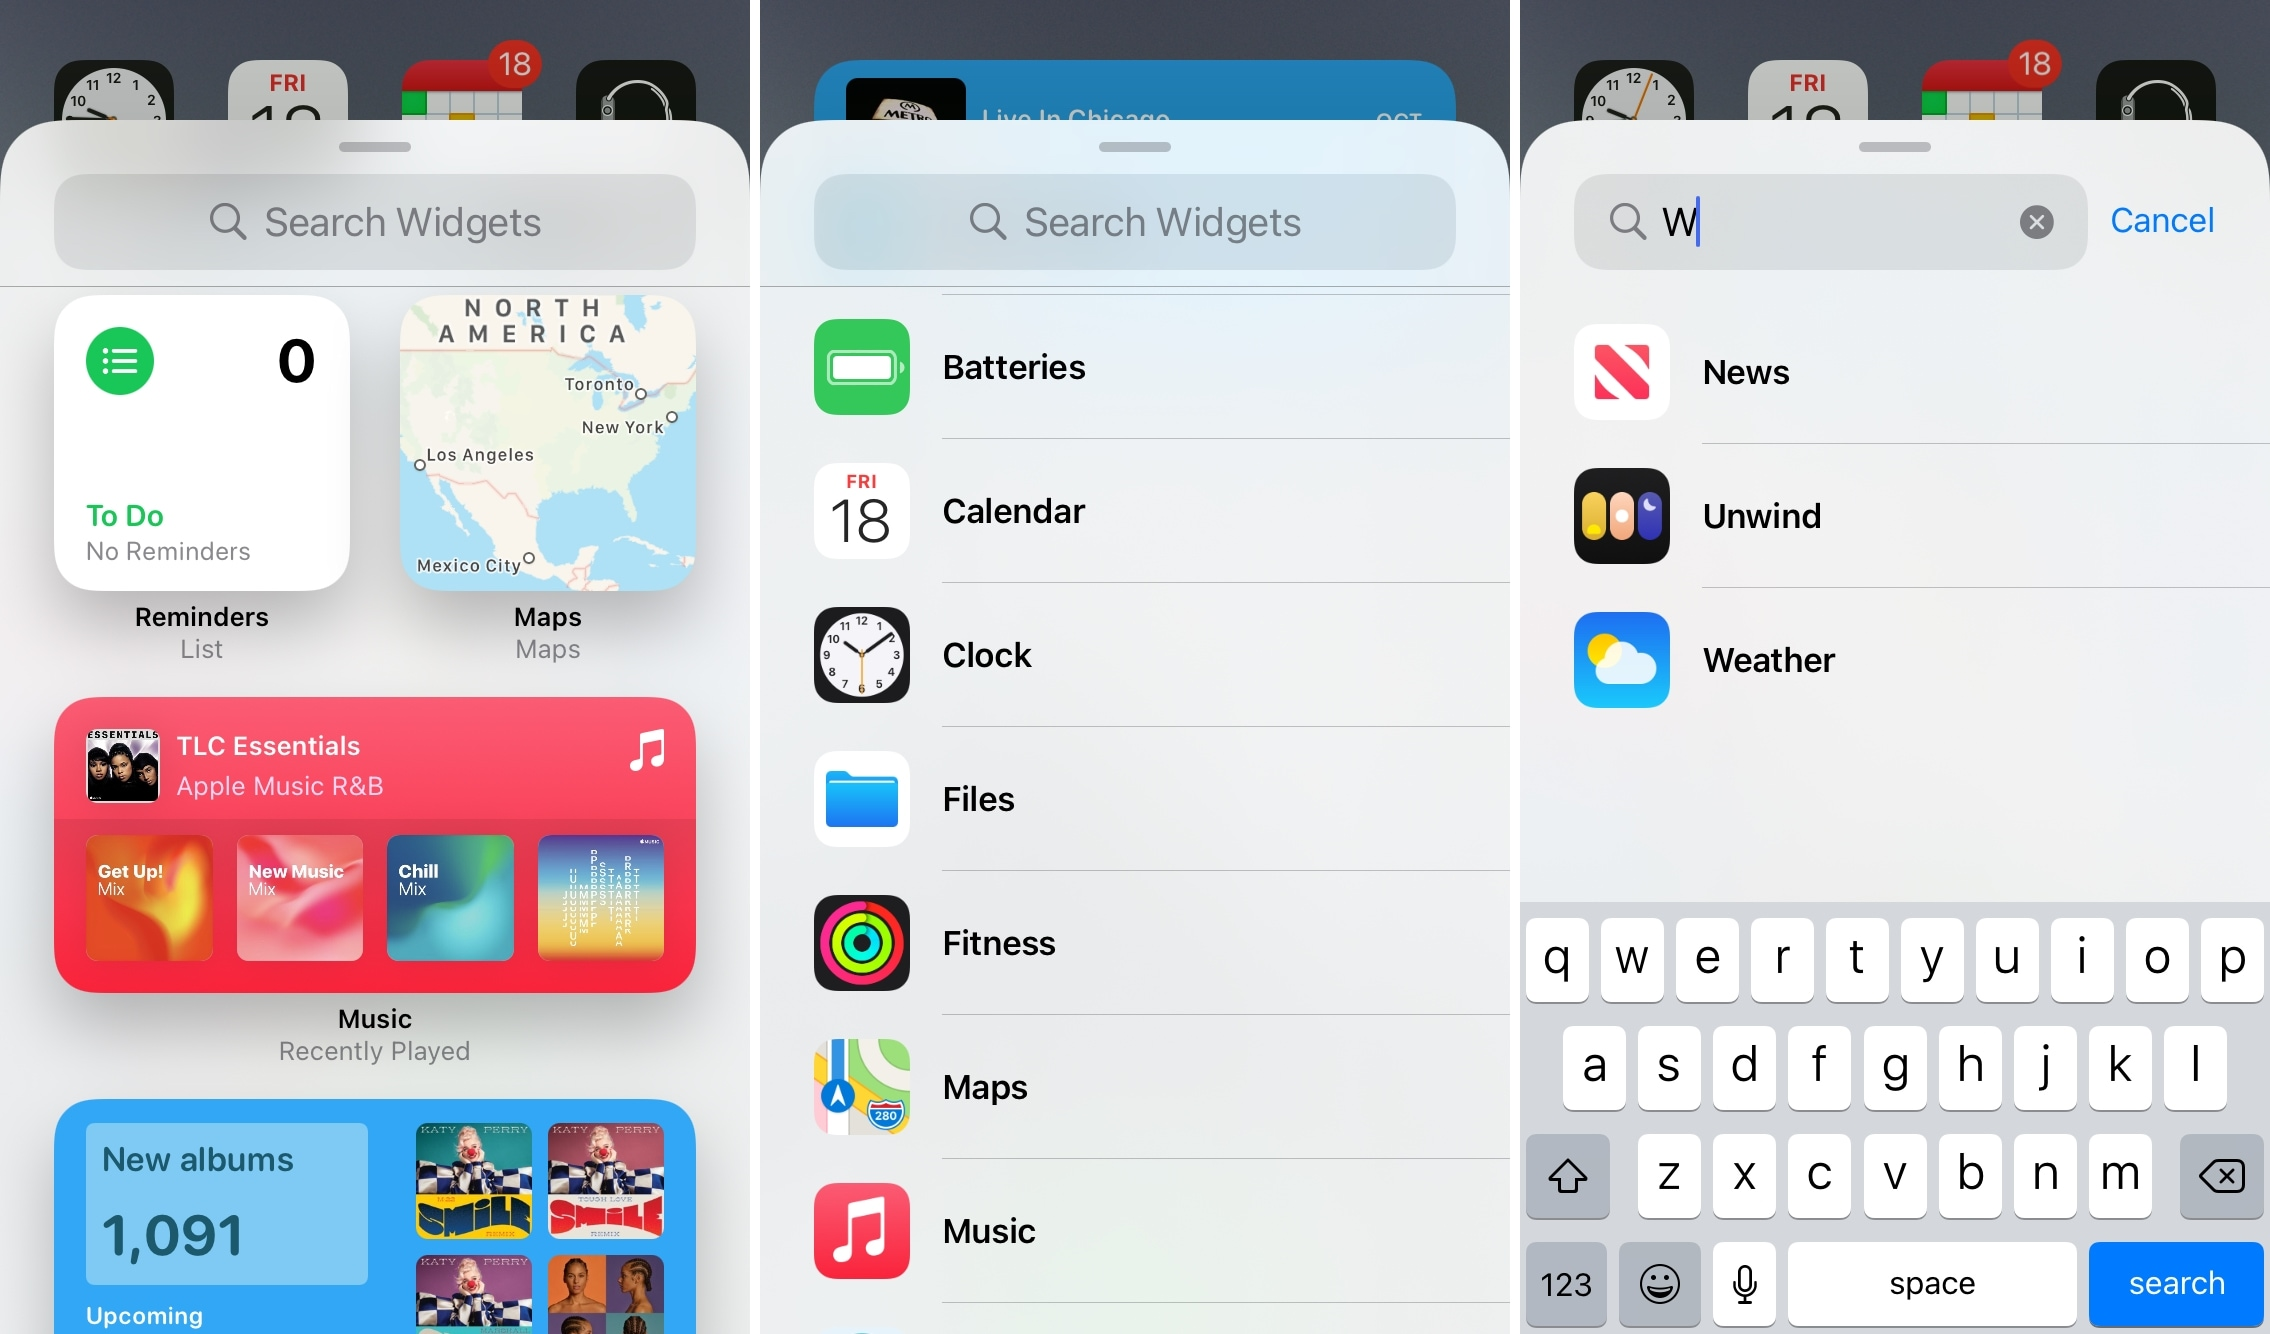 Browse and Search the Widget Gallery on iPhone